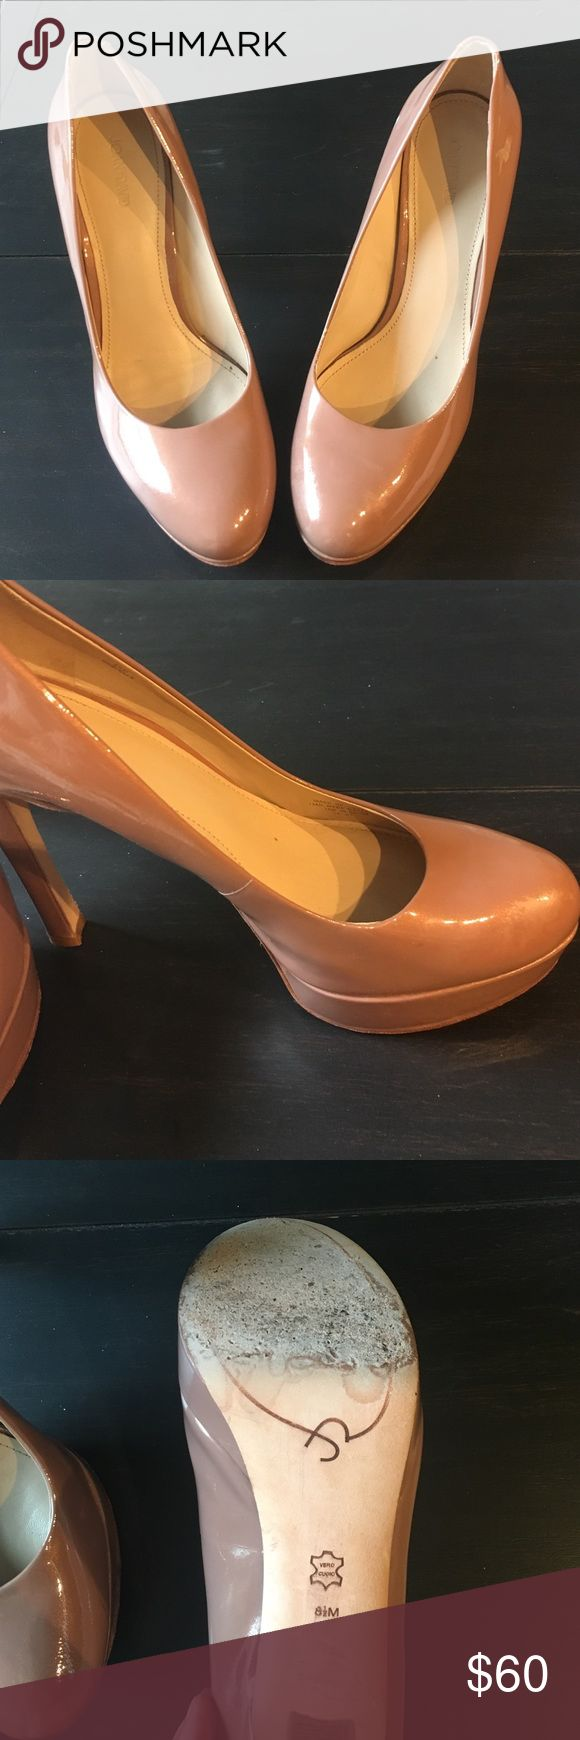 Joan & David patent heels - blush Joan & David Flip patent heel. Size 8 1/2. Slight scuffs along bottom front.  Beautiful color! .  Reasonable offers accepted. Joan & David Shoes Platforms